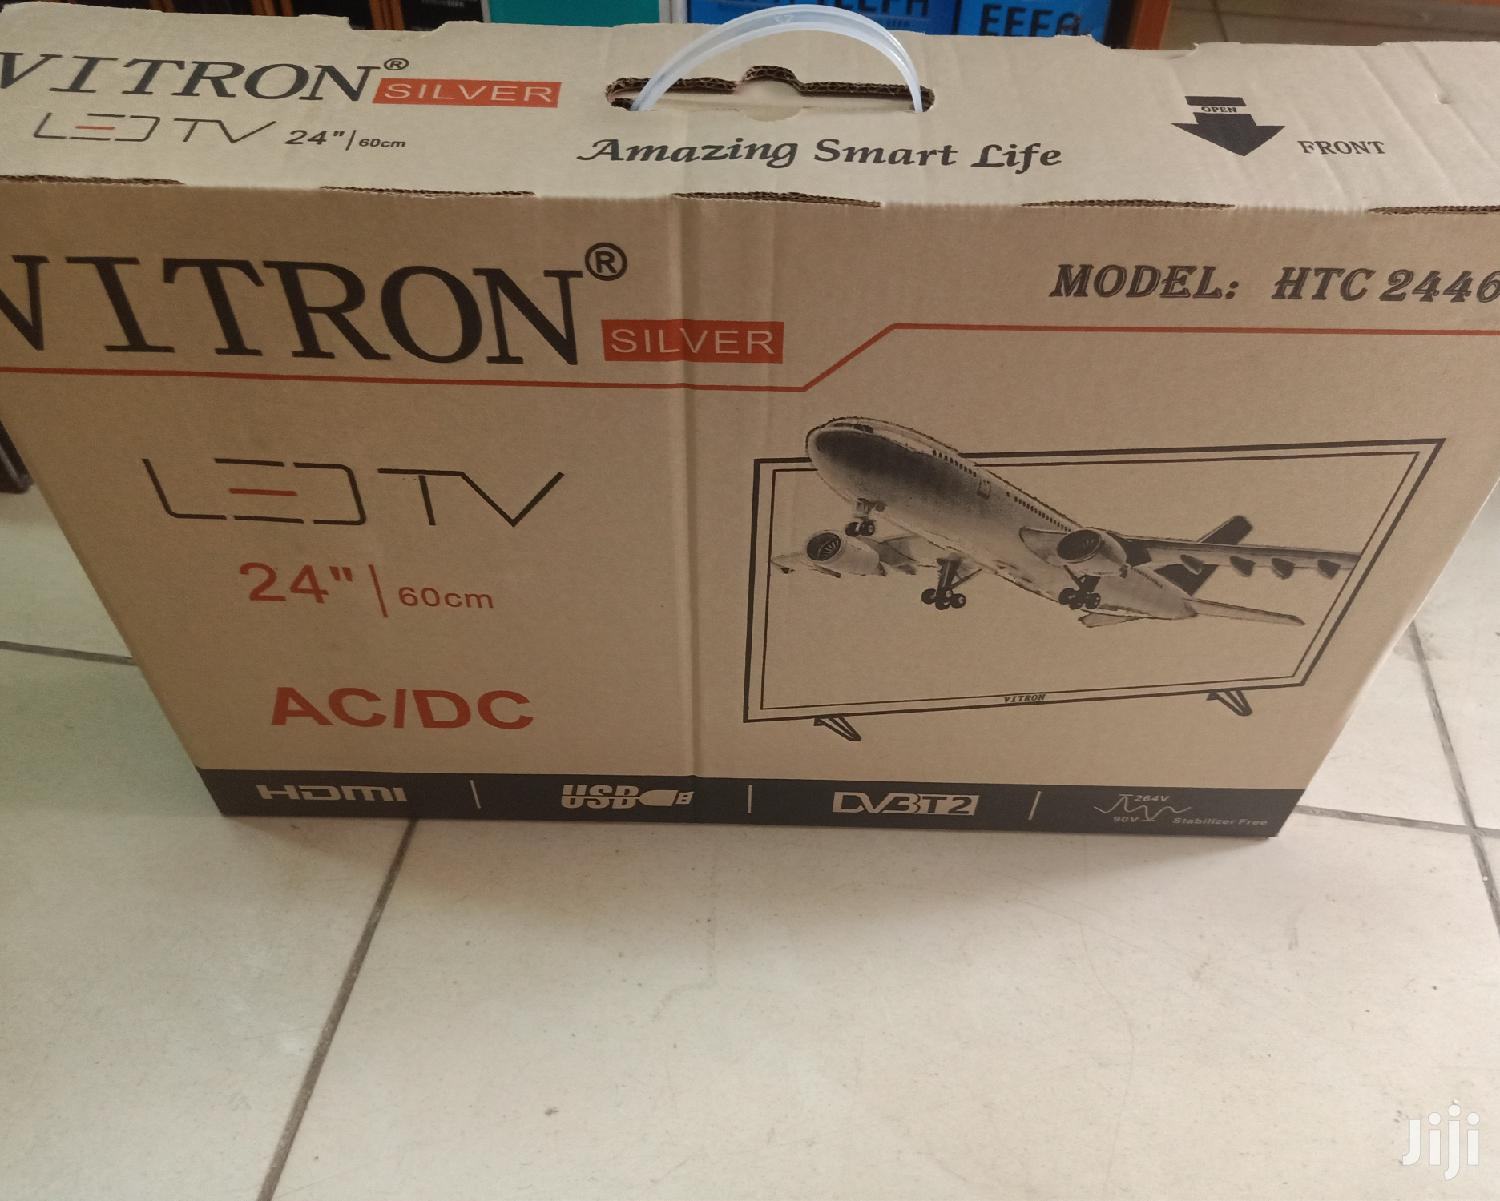 Vitron 24 Digital Tv